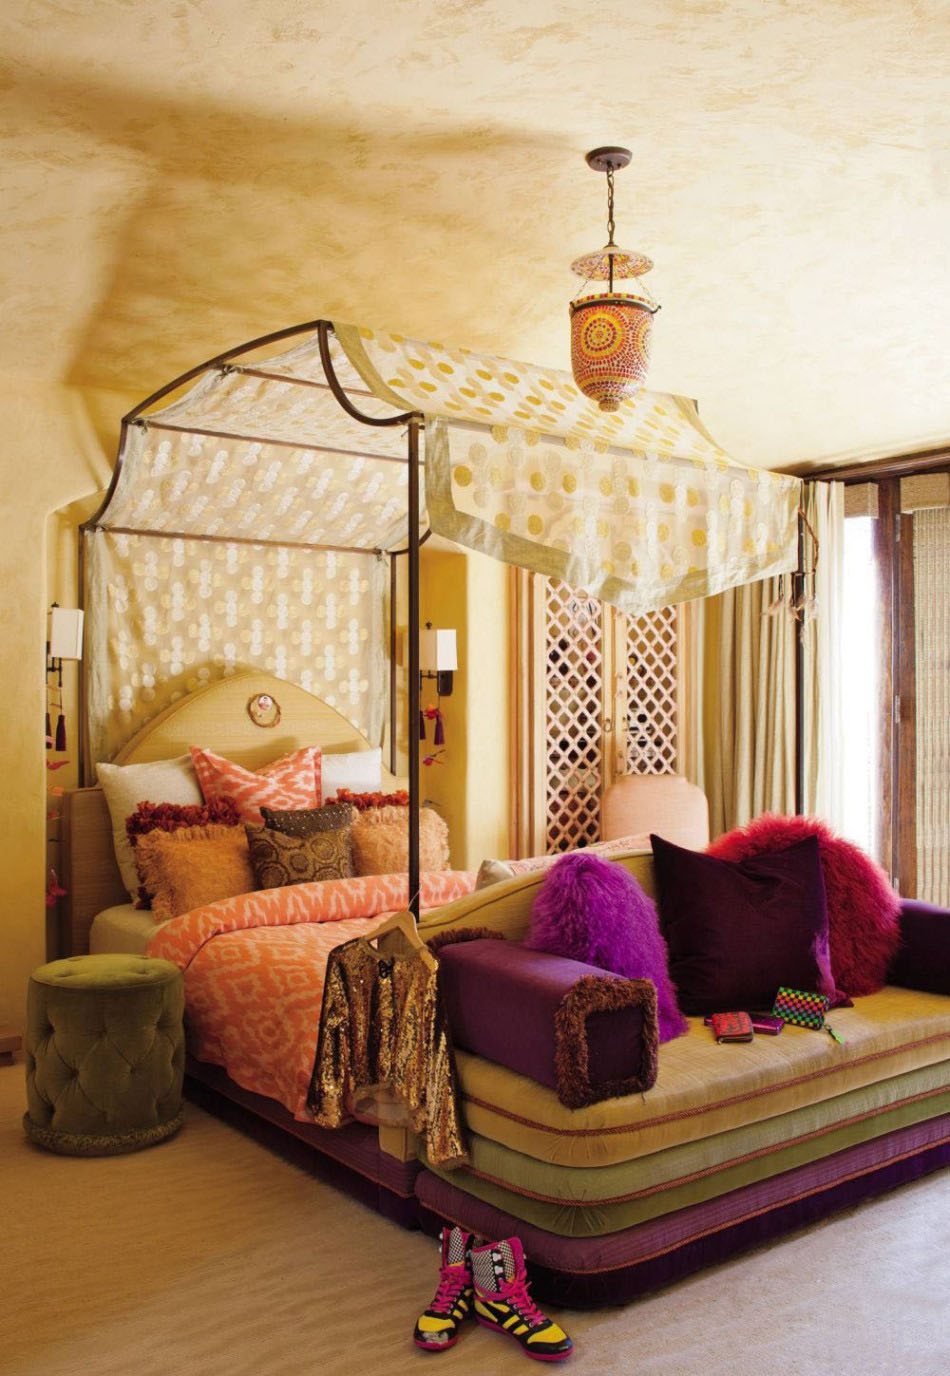 Canopy-beds-For-the-Modern-Bedroom-Freshome-201-950x13761